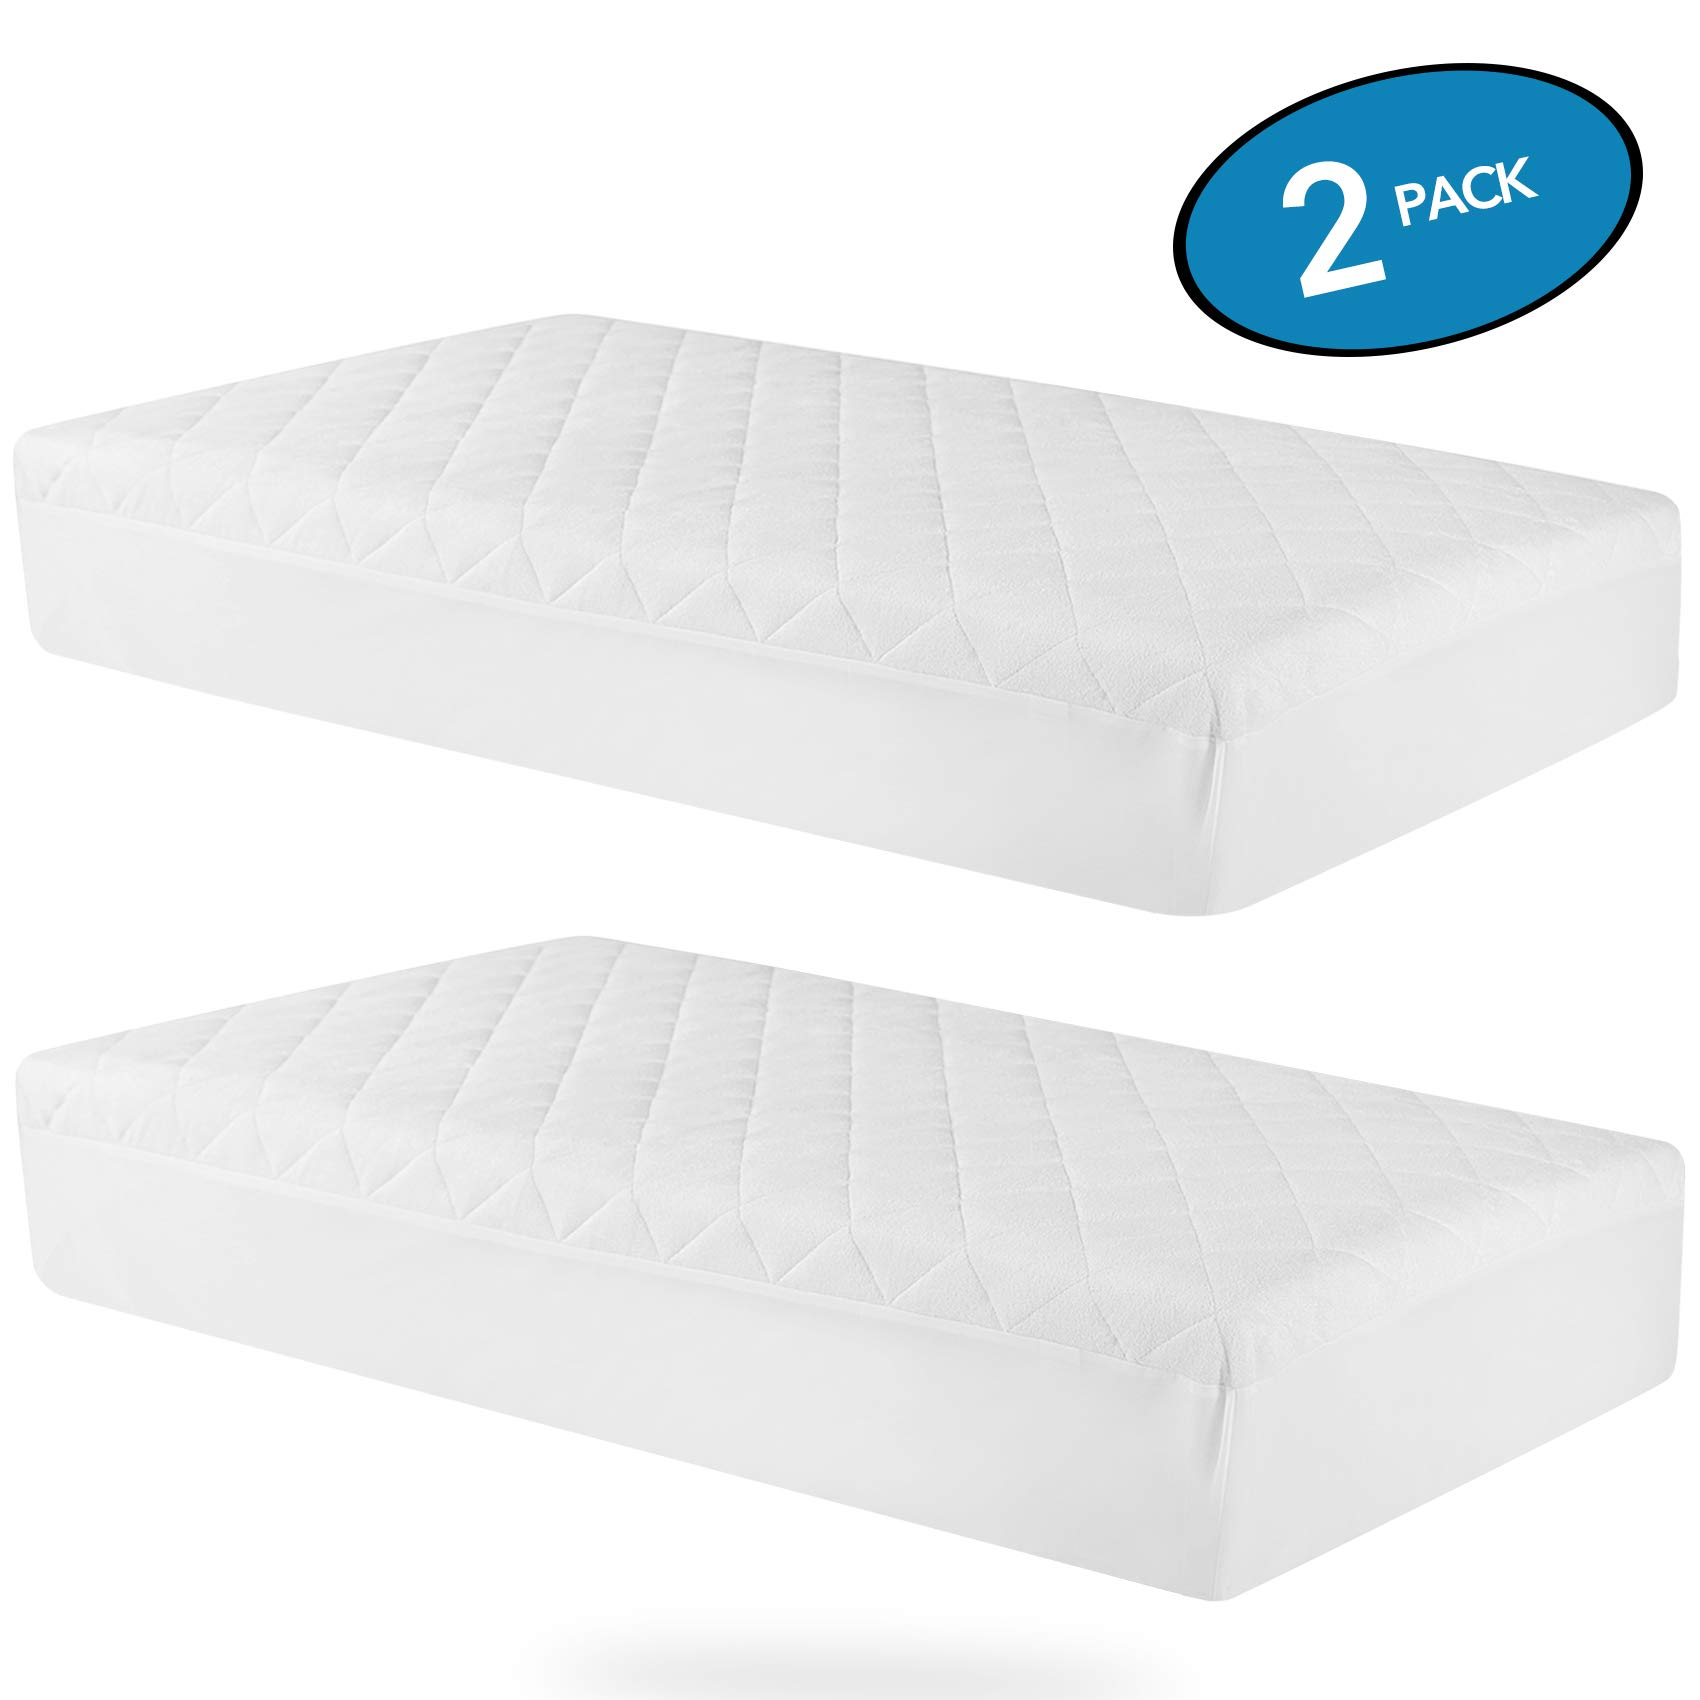 MoMA Waterproof Crib Mattress Cover (Set of 2) - 52x28'' White Crib Mattress Protector - Soft Fitted Baby Crib Mattress Pad with 9-inch Pocket - Hypoallergenic Bamboo Fiber Toddler Mattress Pad by MoMA (Image #1)